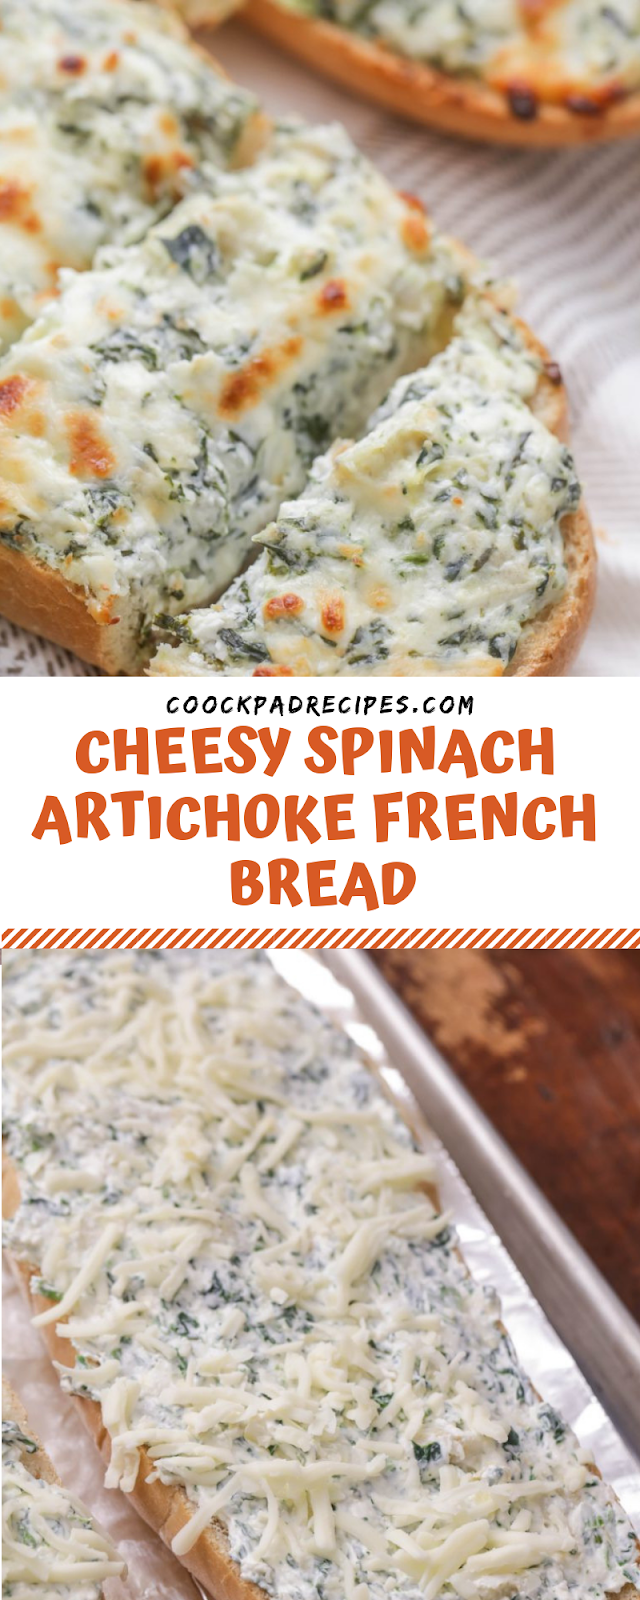 CHEESY SPINACH ARTICHOKE FRENCH BREAD